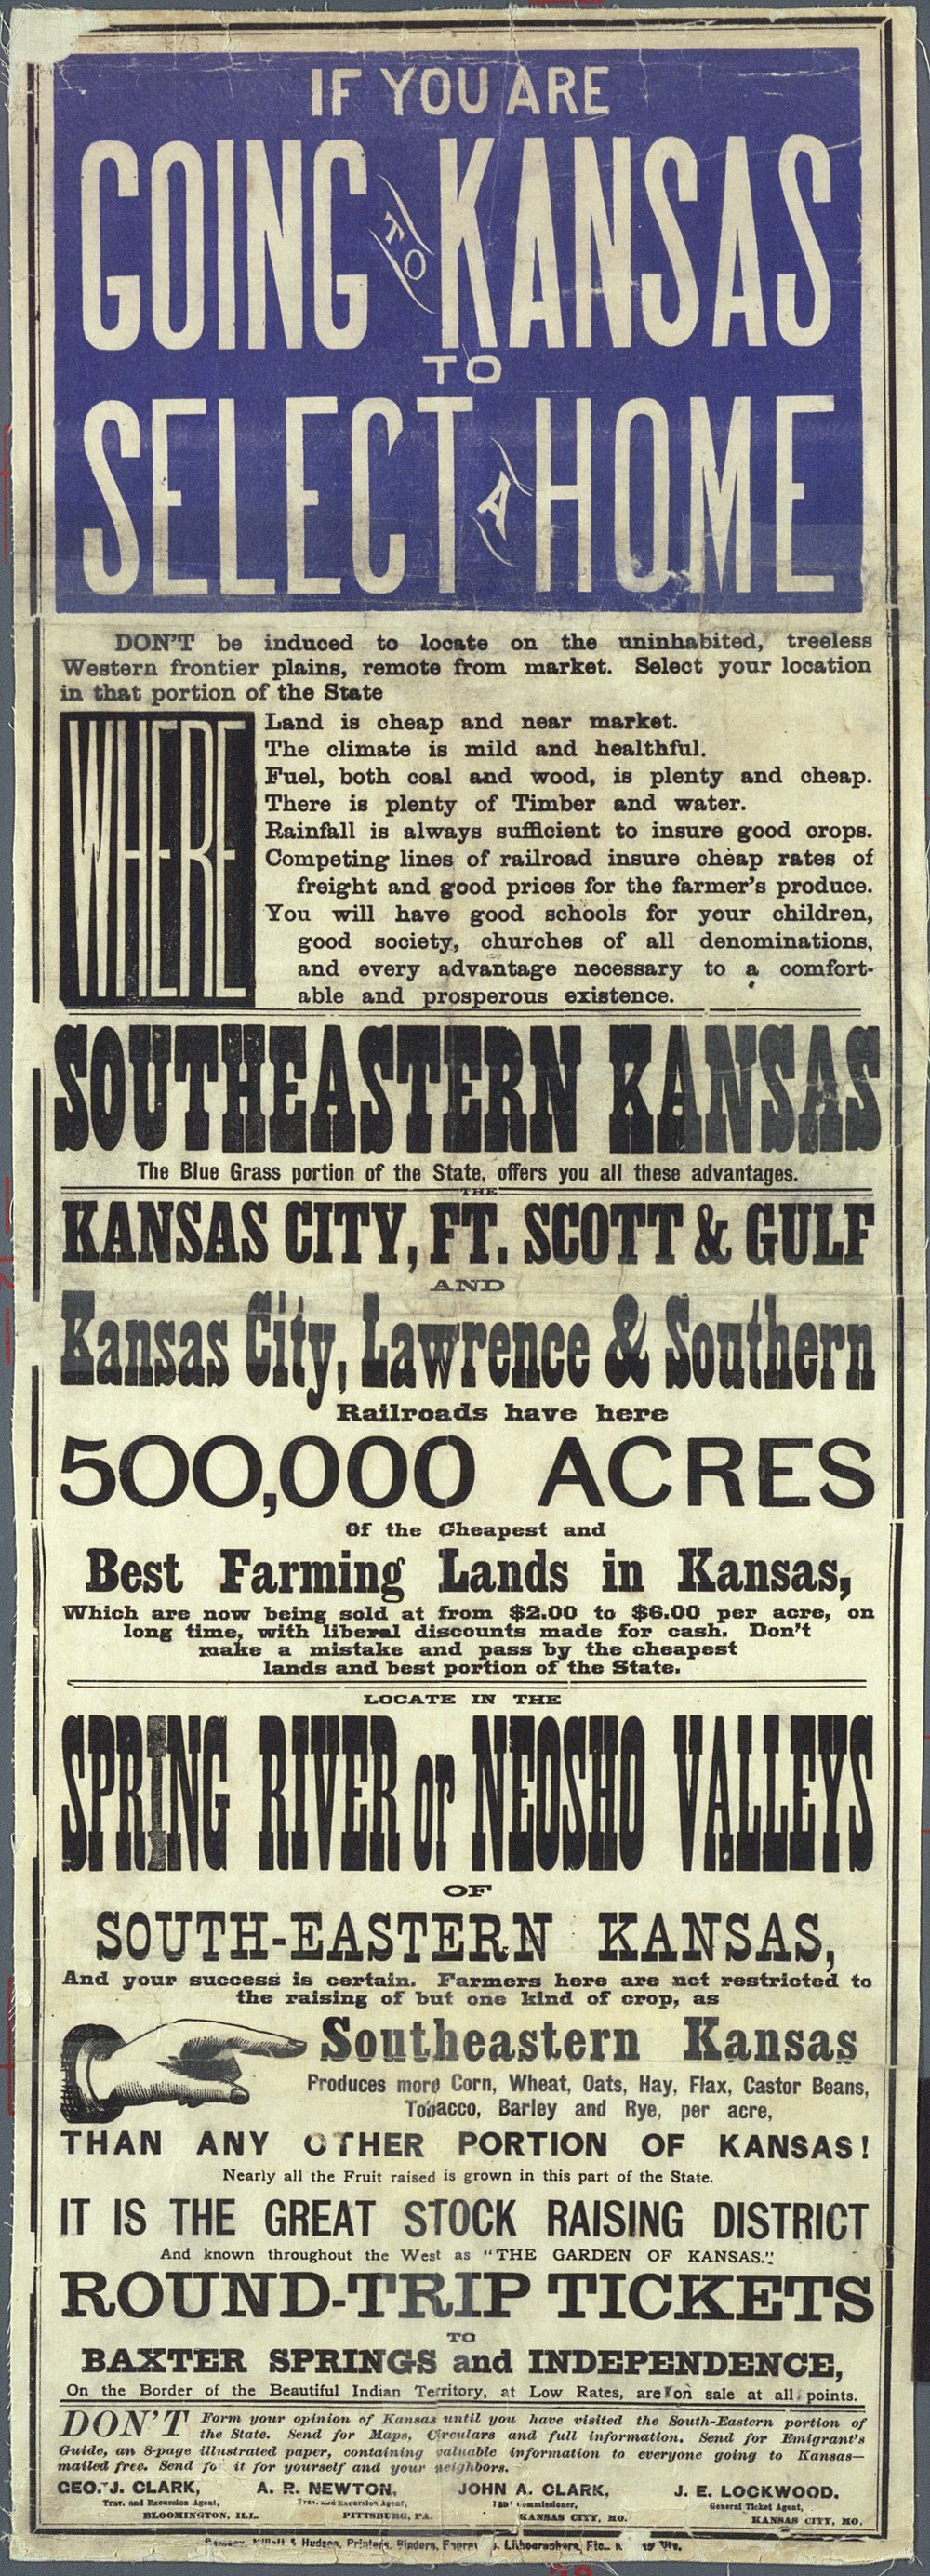 If you are going to Kansas to select a home . . .